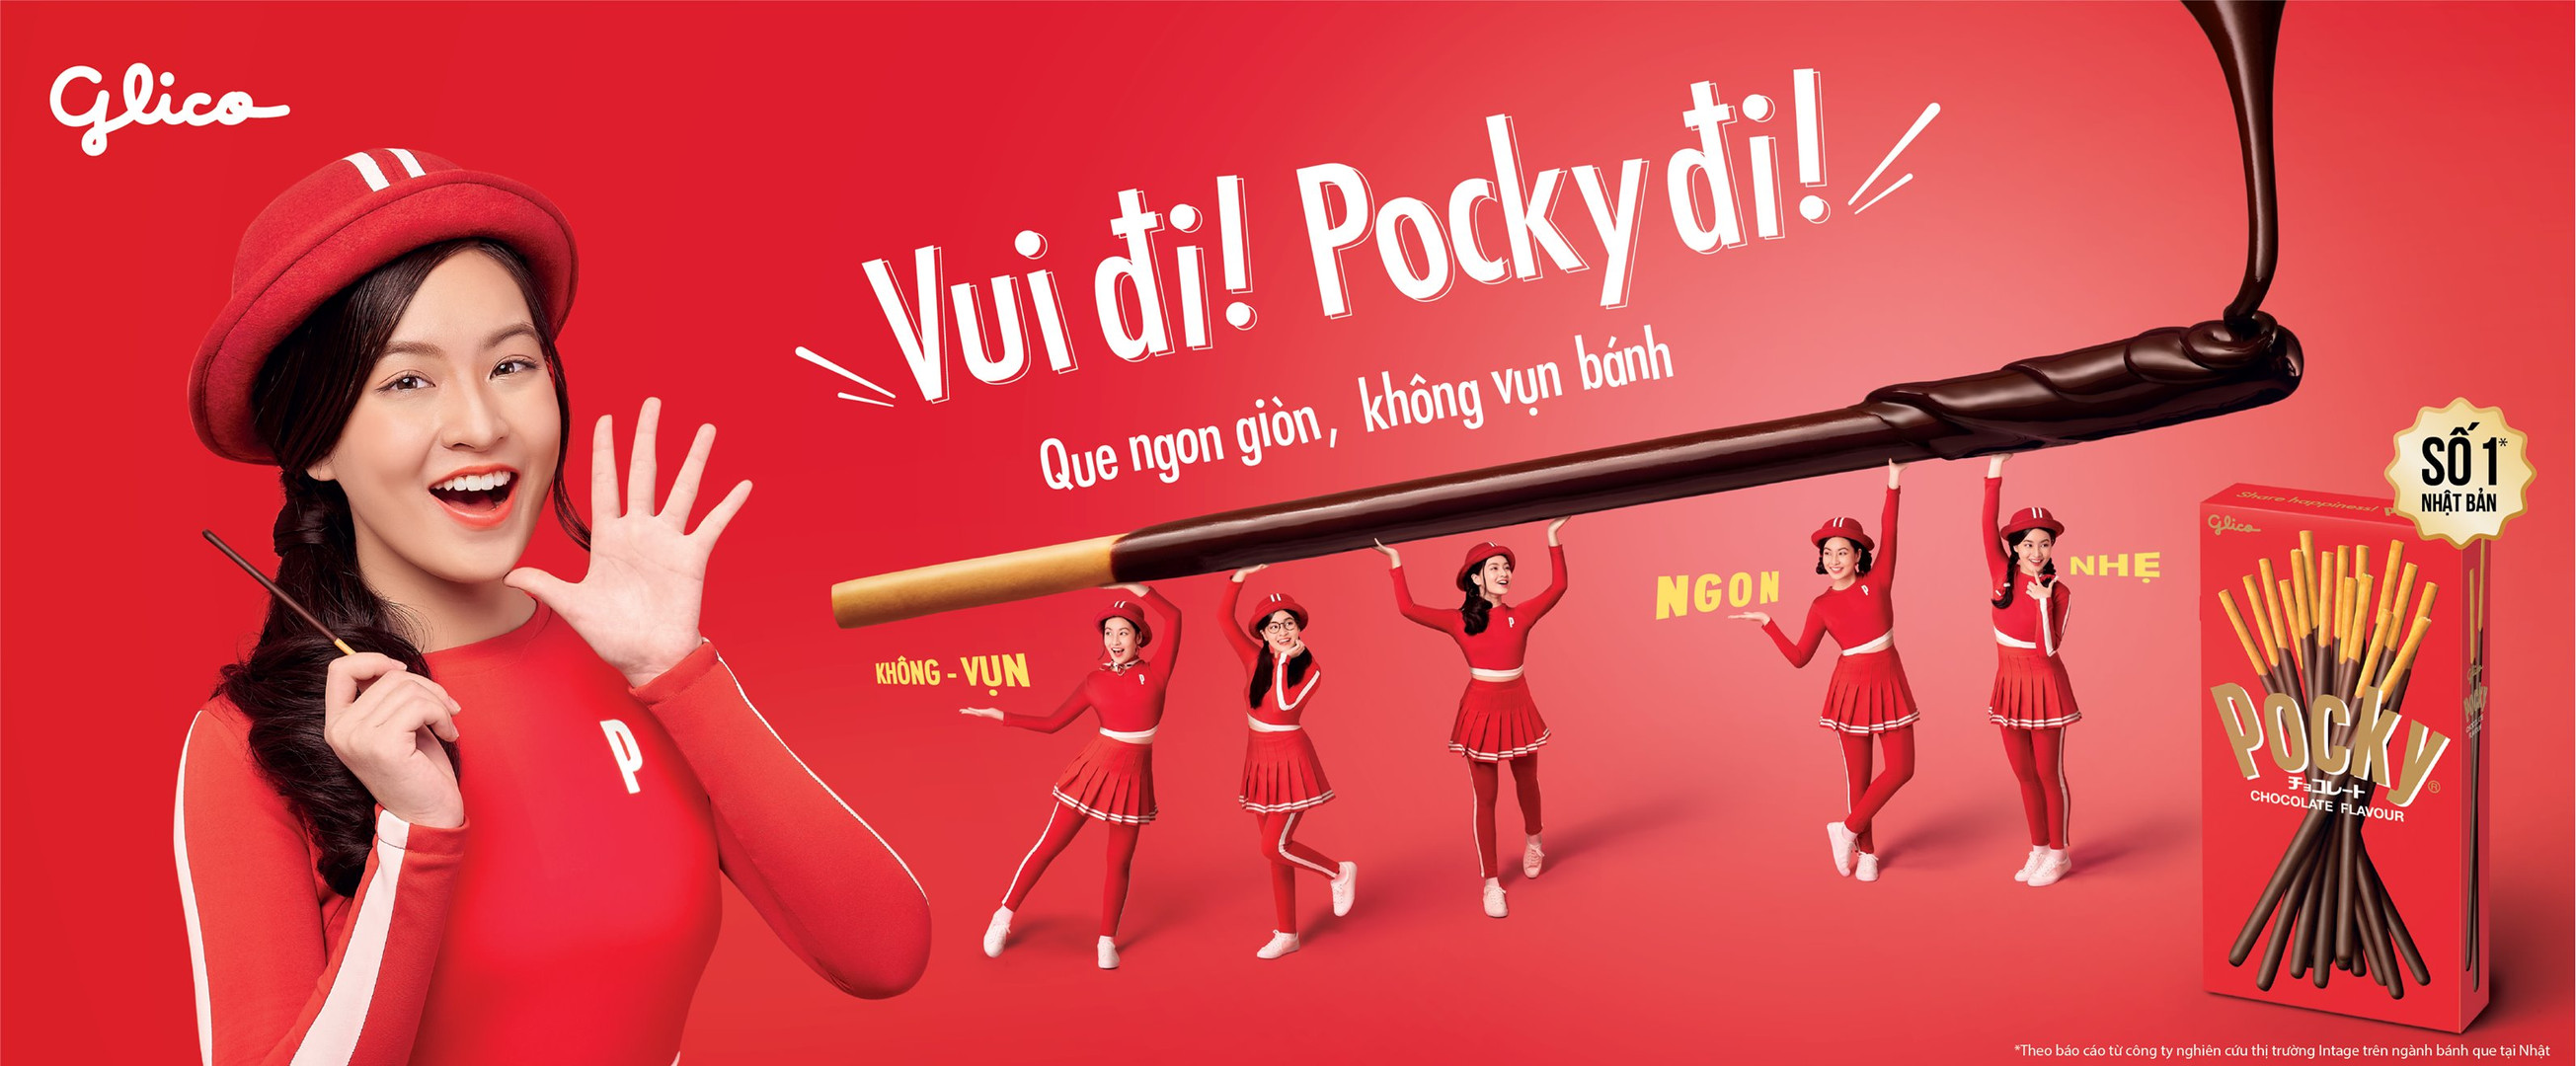 POCKY - HORIZONTAL.jpg